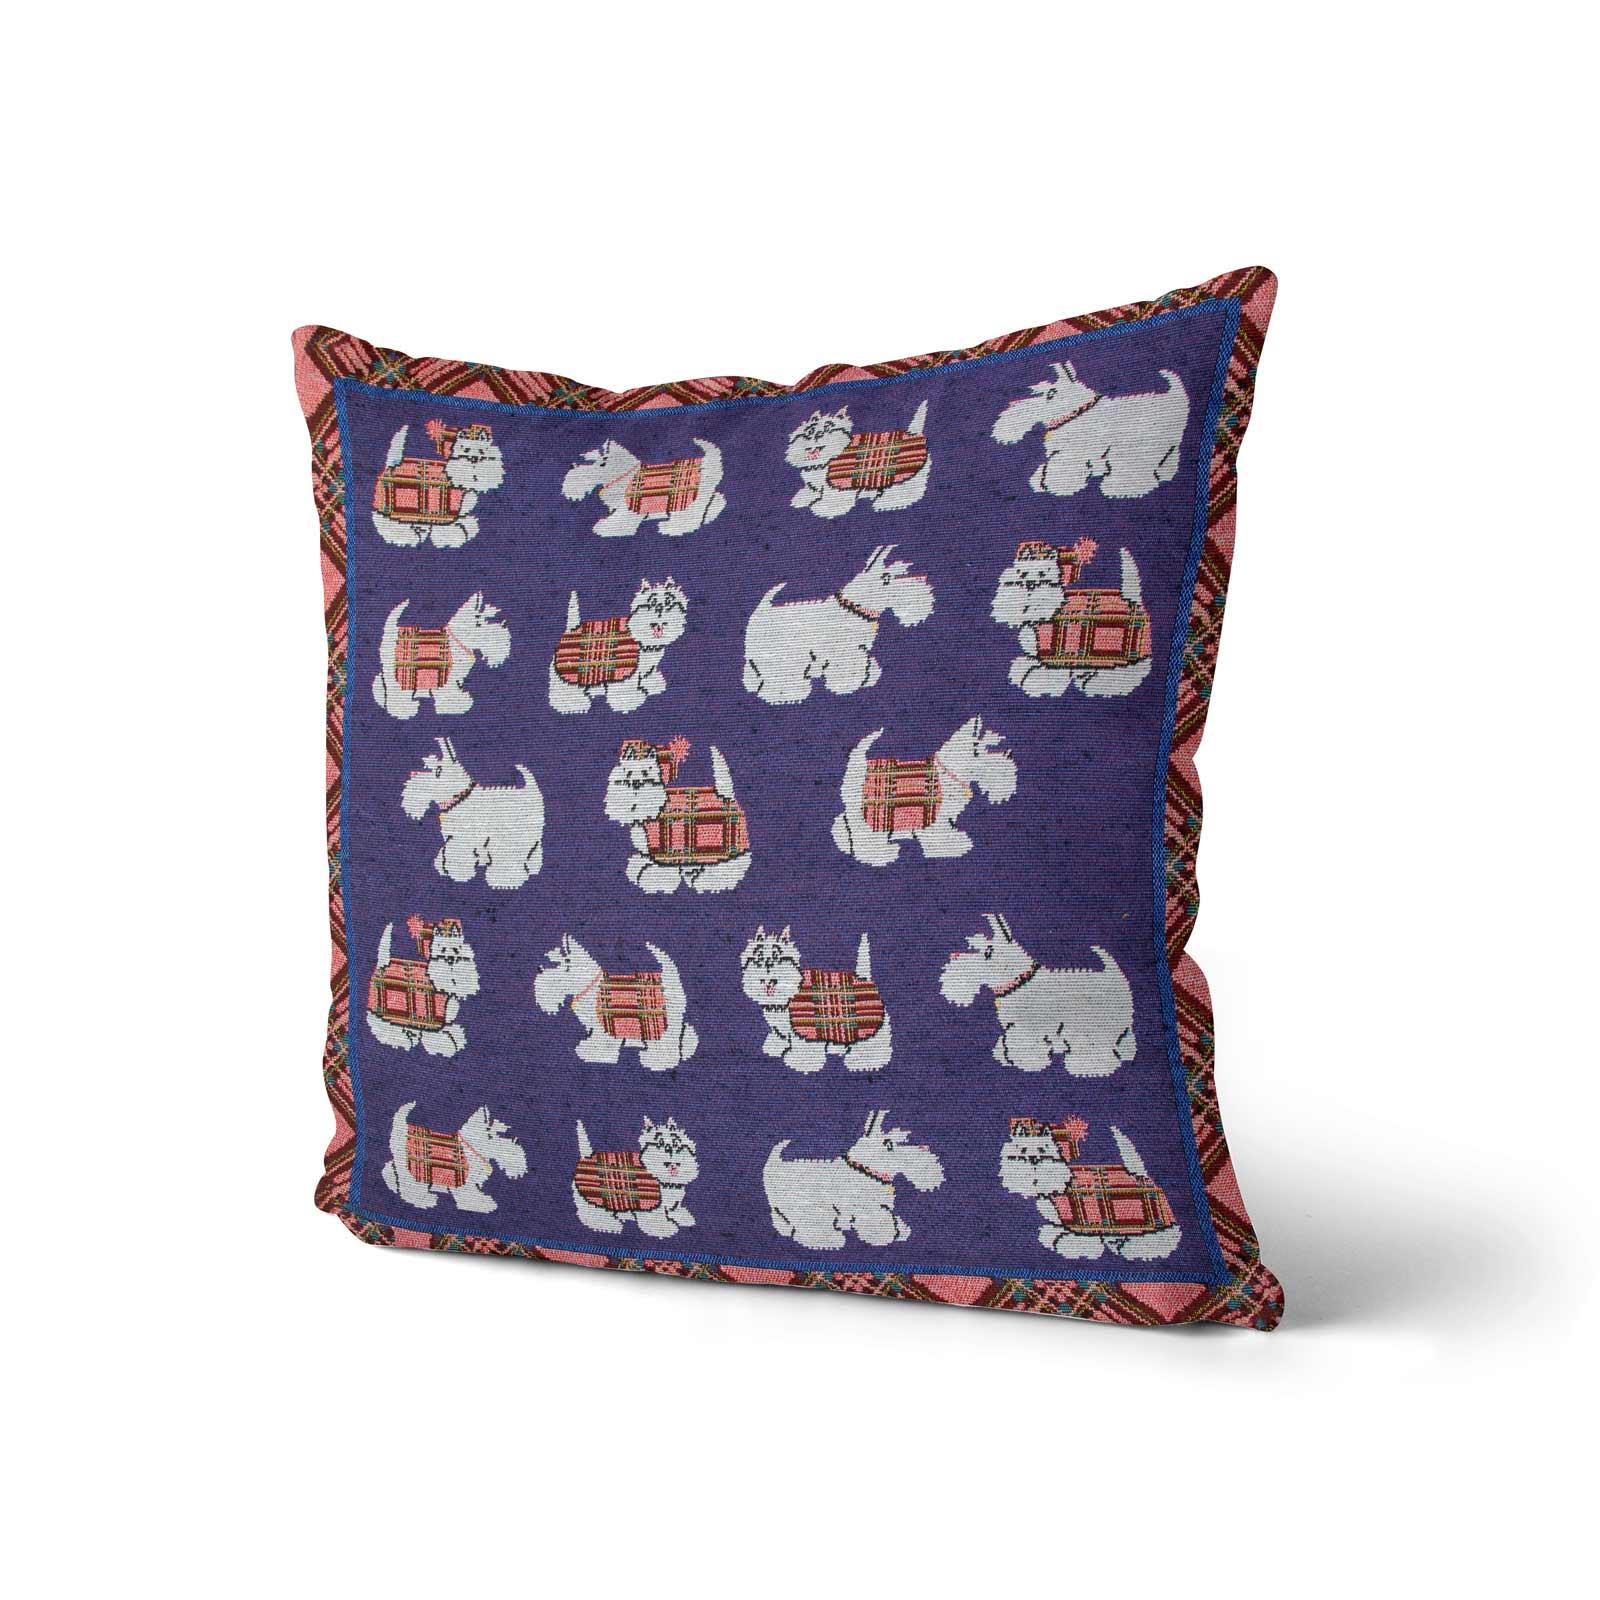 Tapestry-Cushion-Covers-Vintage-Pillow-Cover-Collection-18-034-45cm-Filled-Cushions thumbnail 236